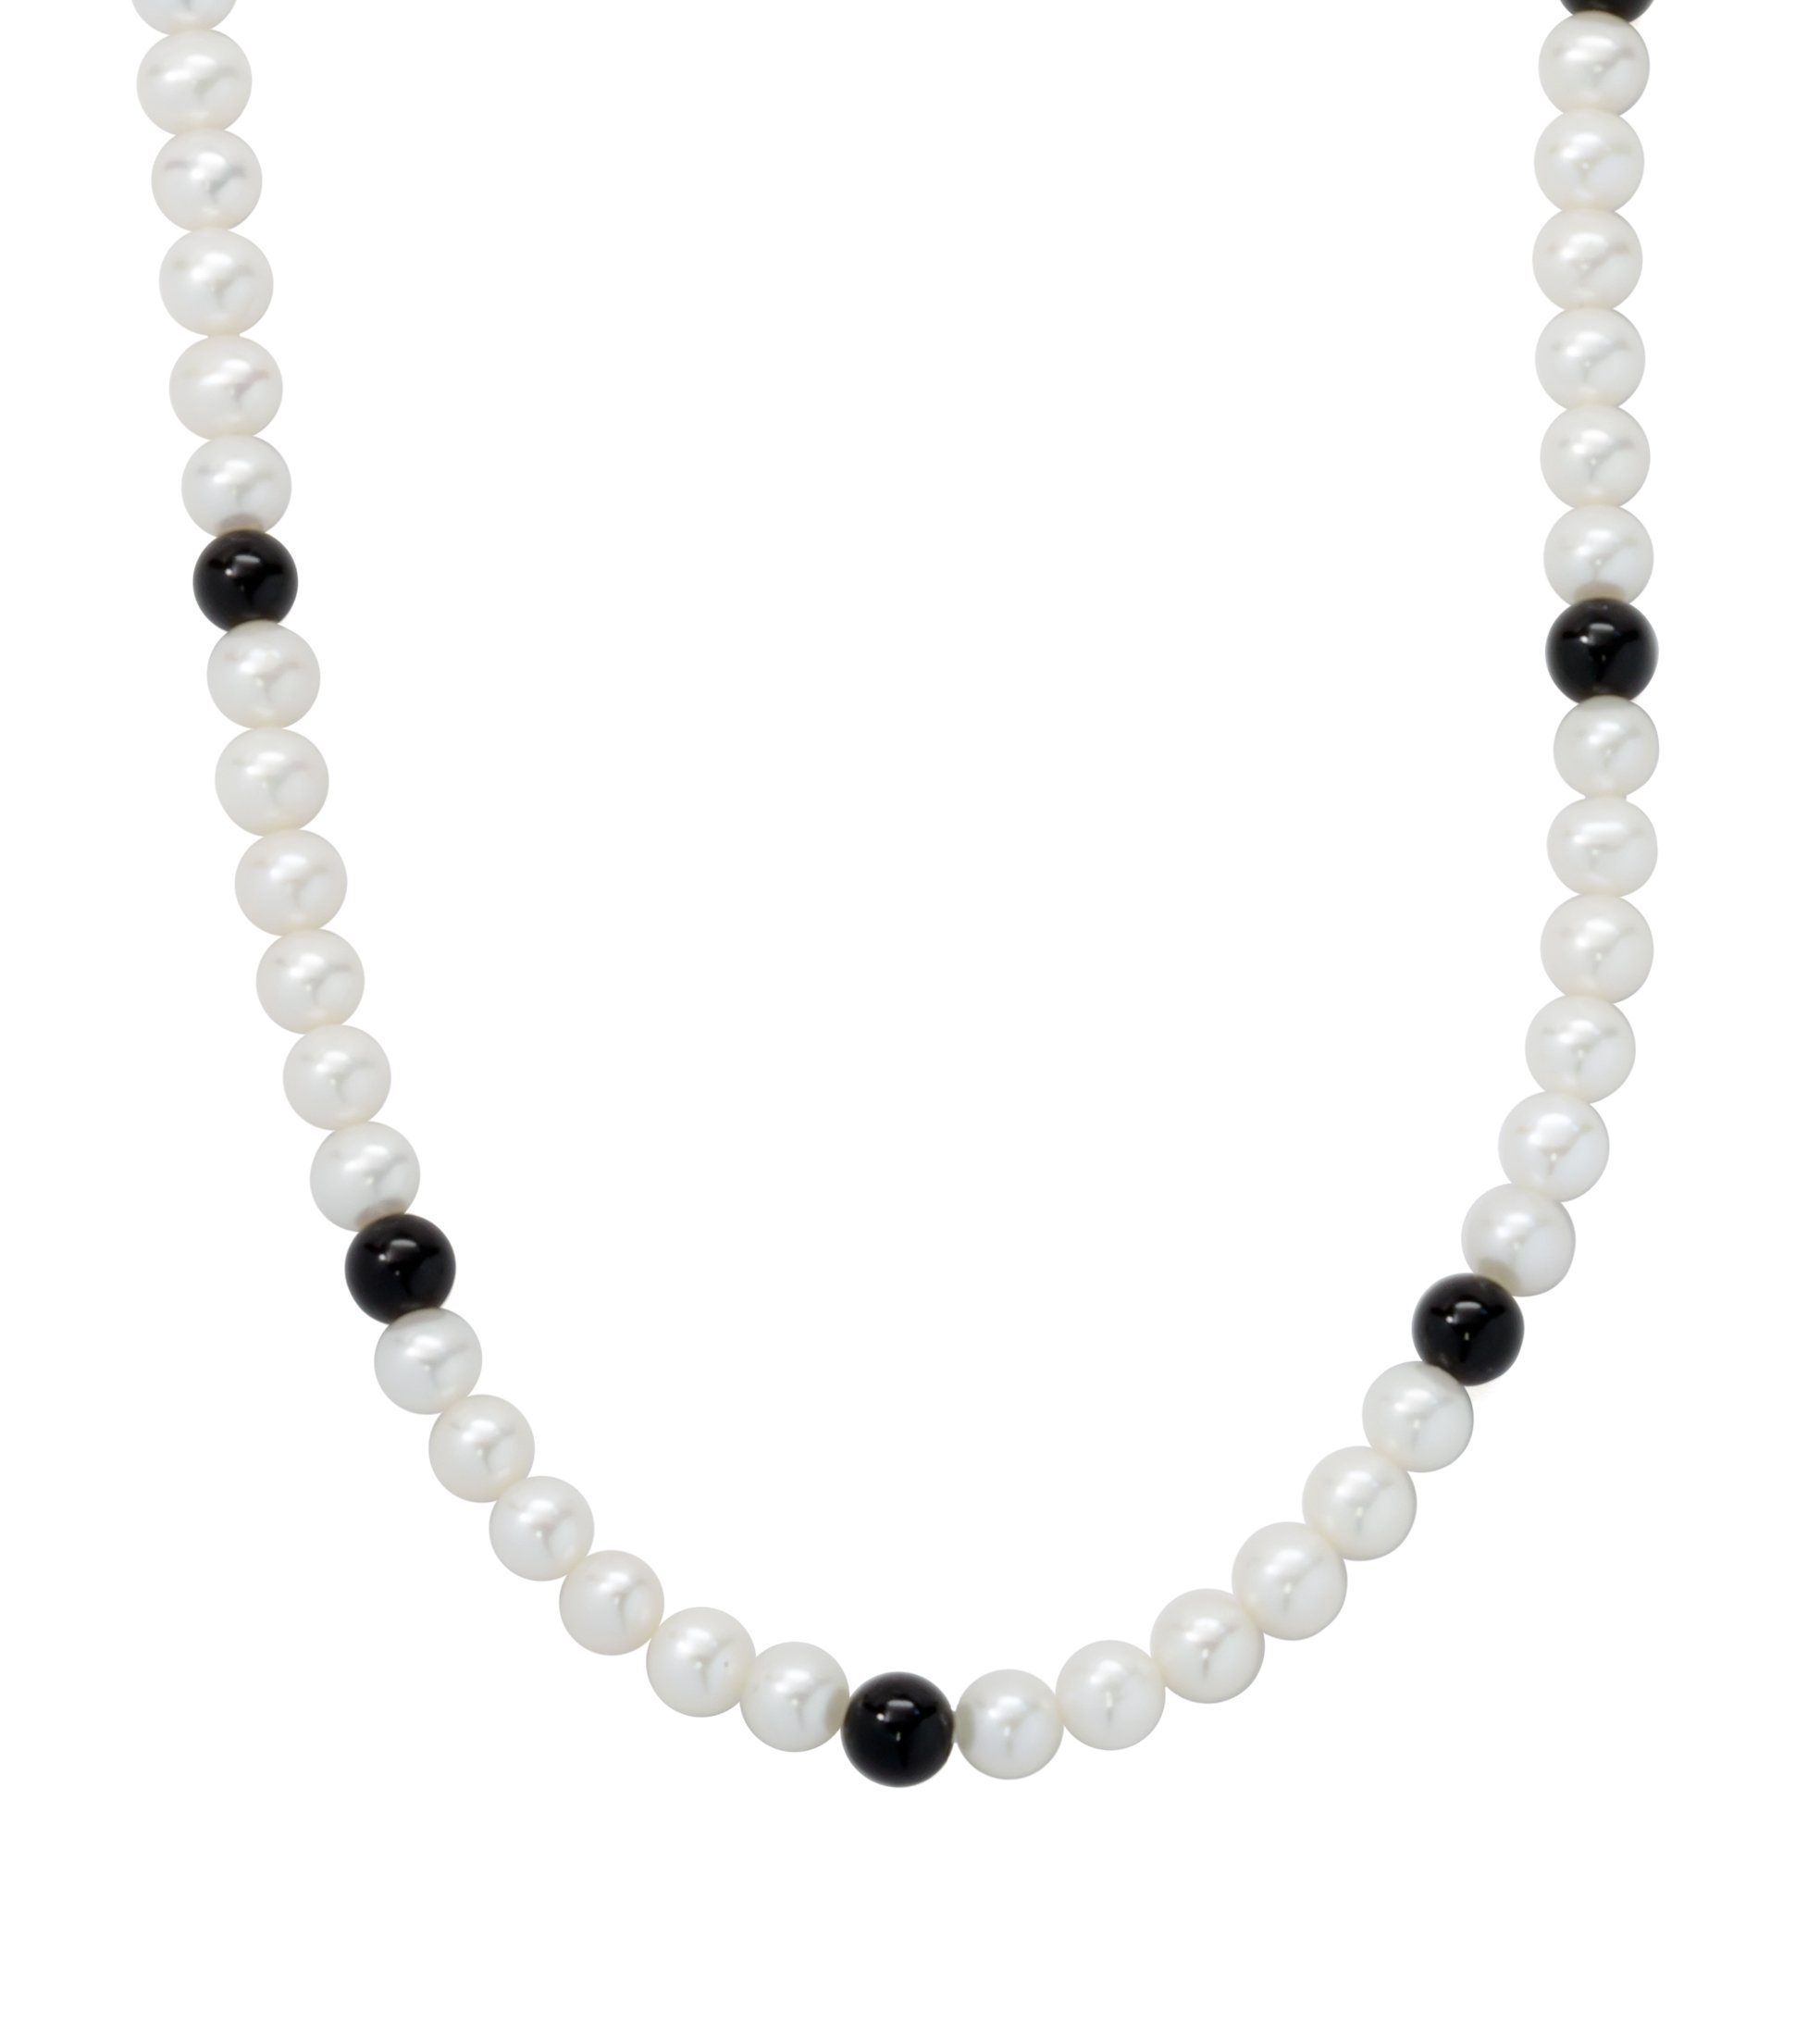 ISAAC WESTMAN White Freshwater Cultured Pearl Necklace with Black Onyx Beads | 18'' Princess Length | Sterling Silver Clasp